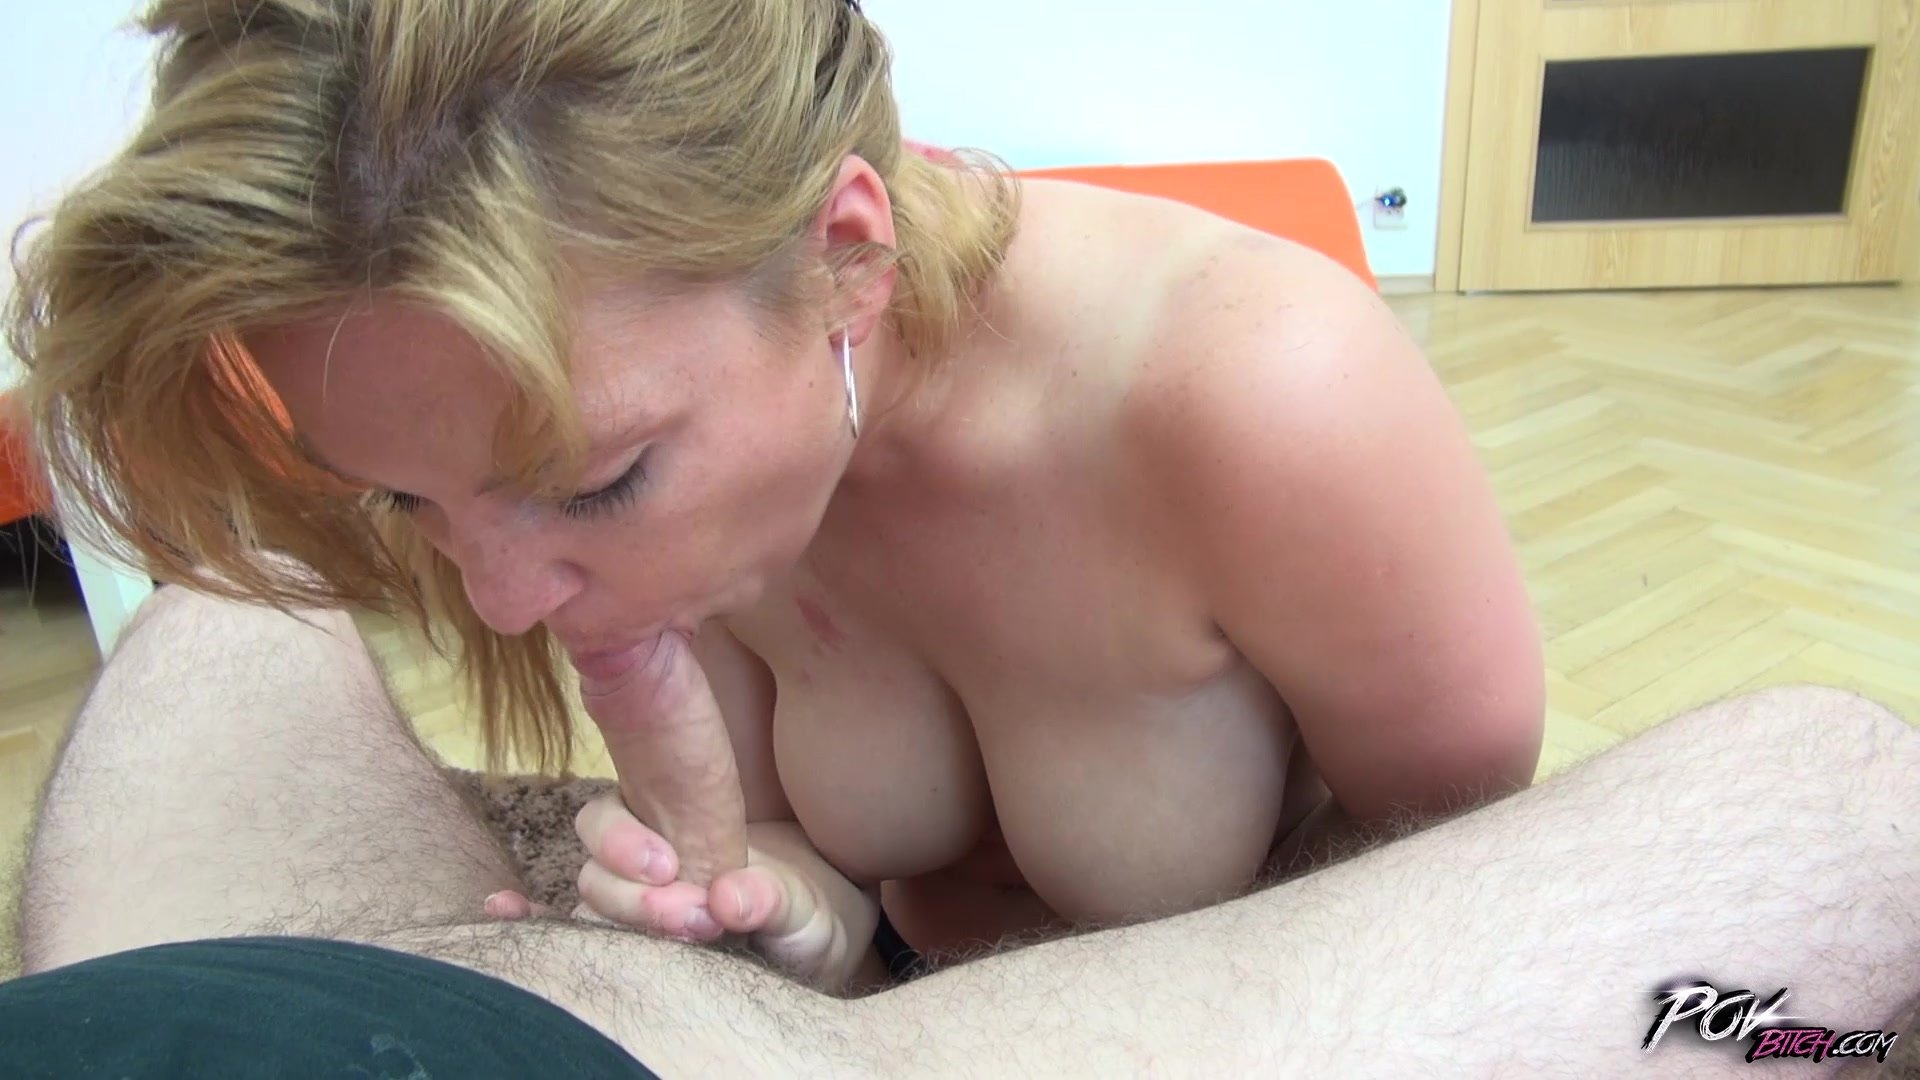 best of big breast xx video